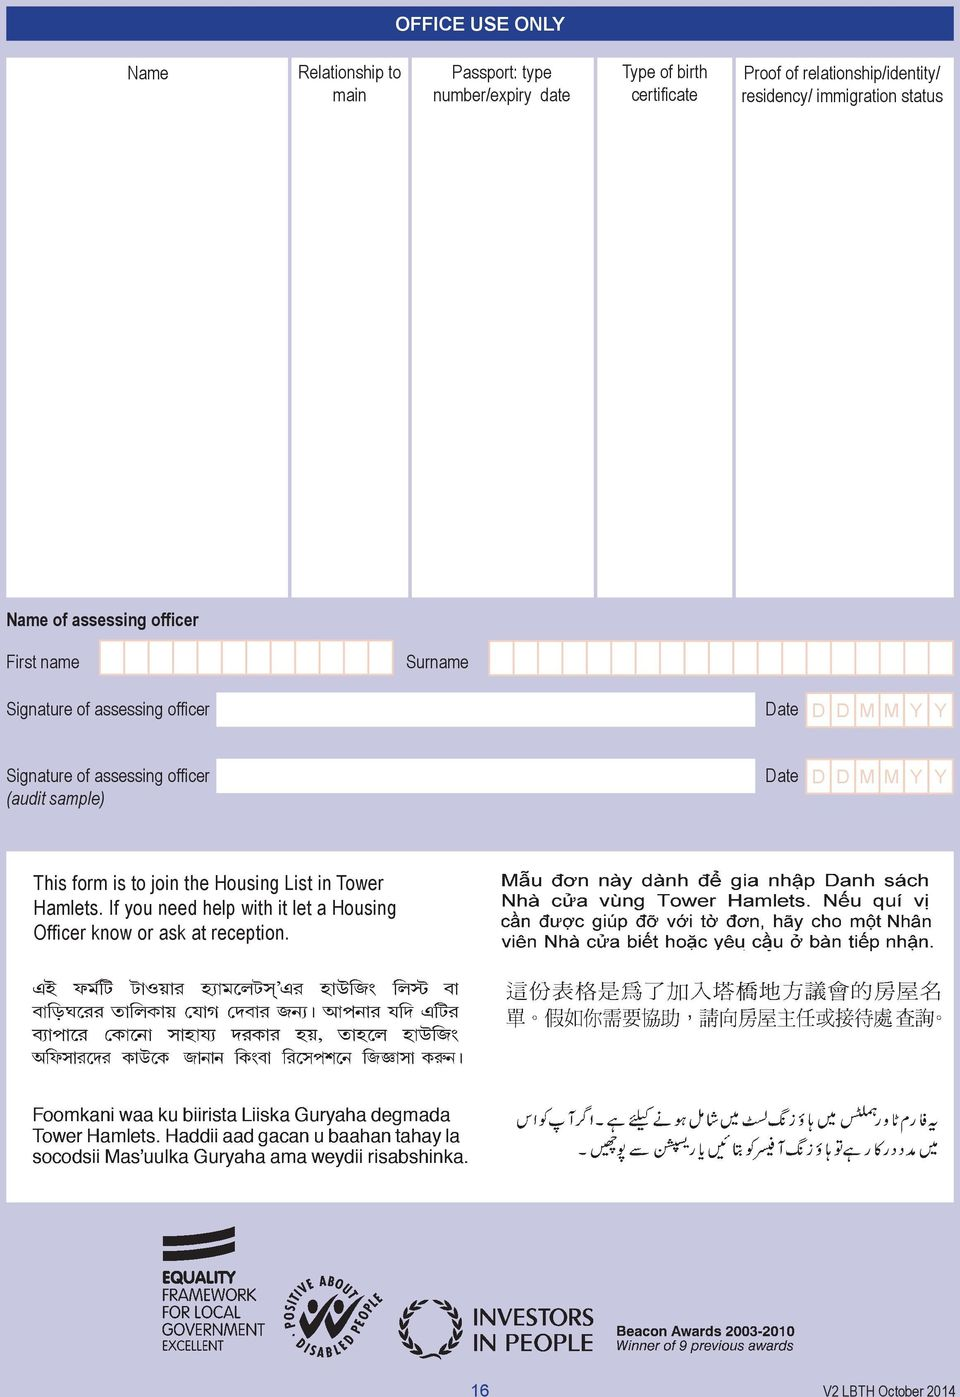 assessing officer Date Signature of assessing officer (audit sample) Date This form is to join the Housing List